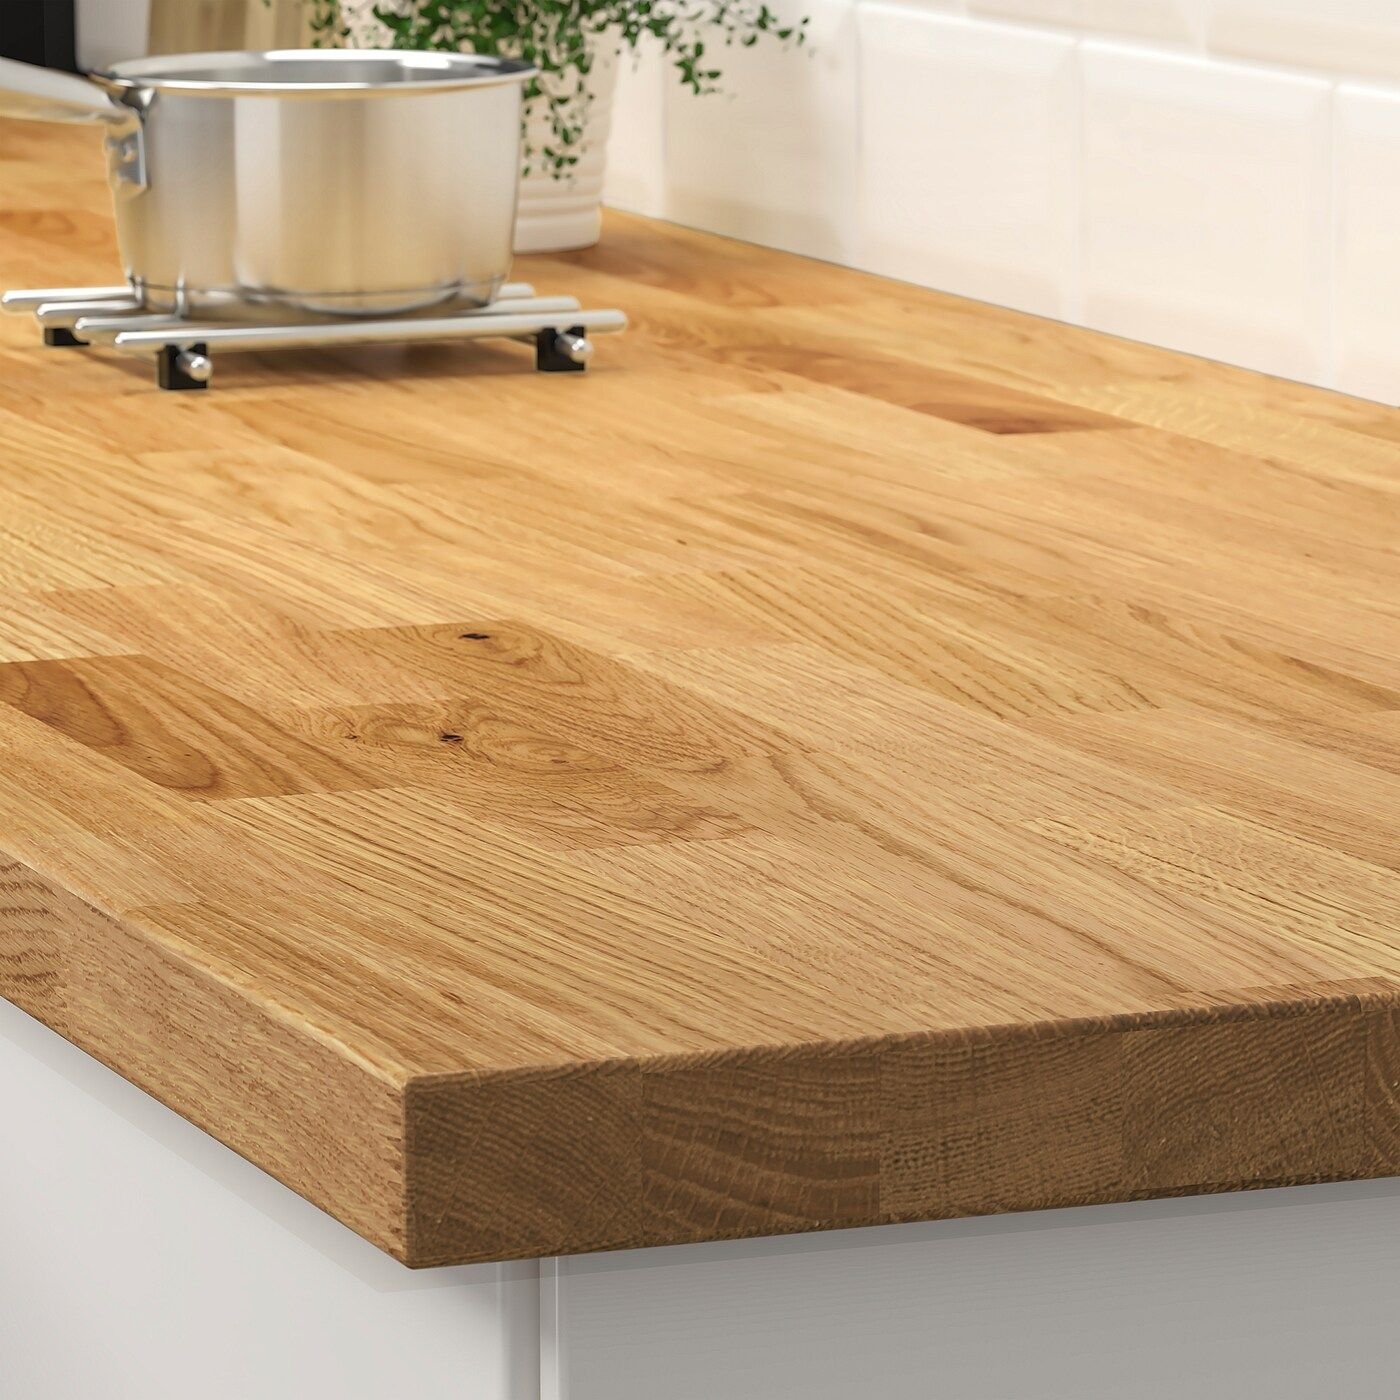 Ikea Karlby Countertop For Kitchen Island Oak Veneer In 2020